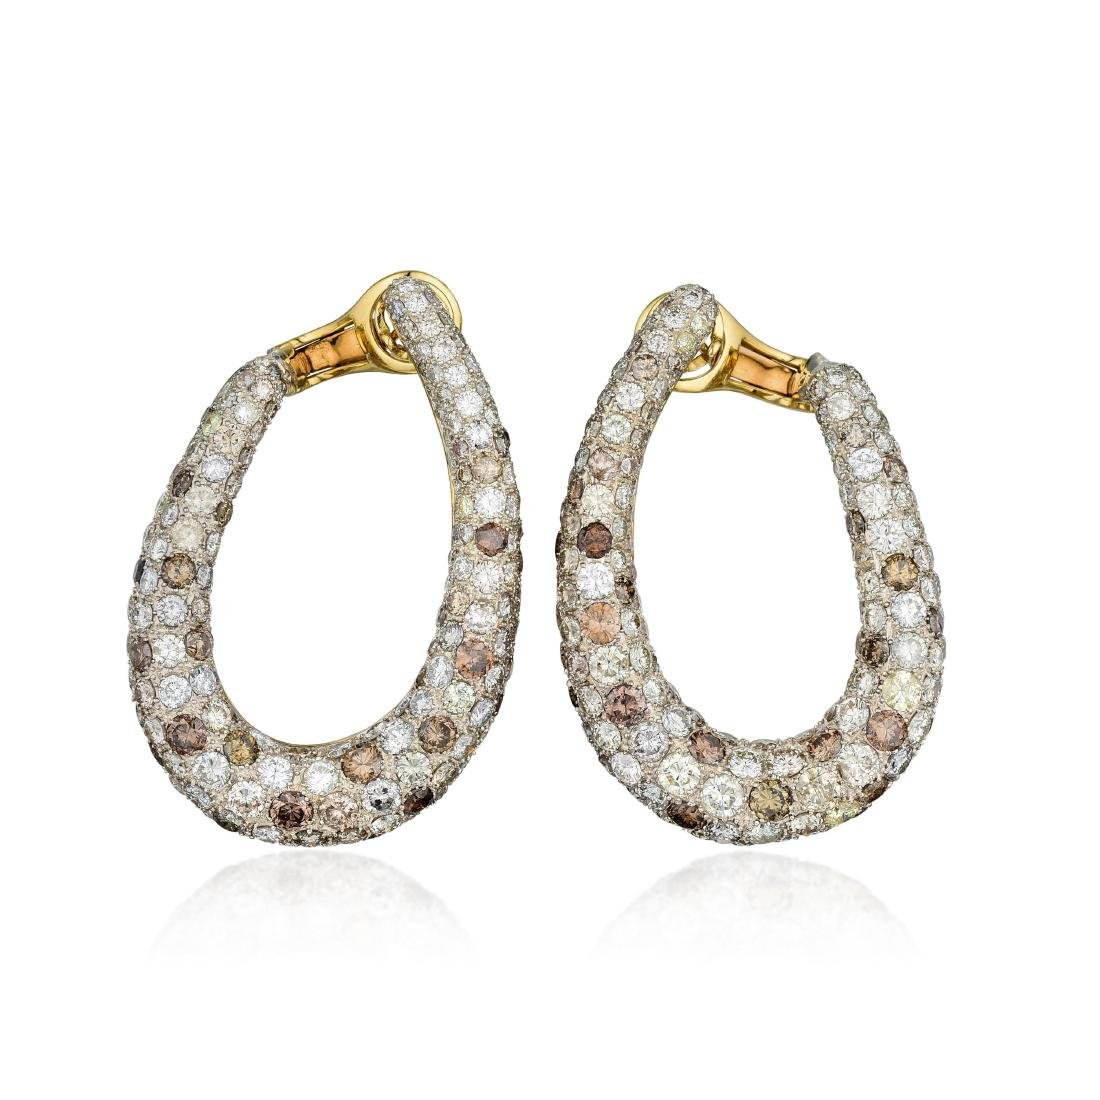 Diamond and Colored Diamond Earrings